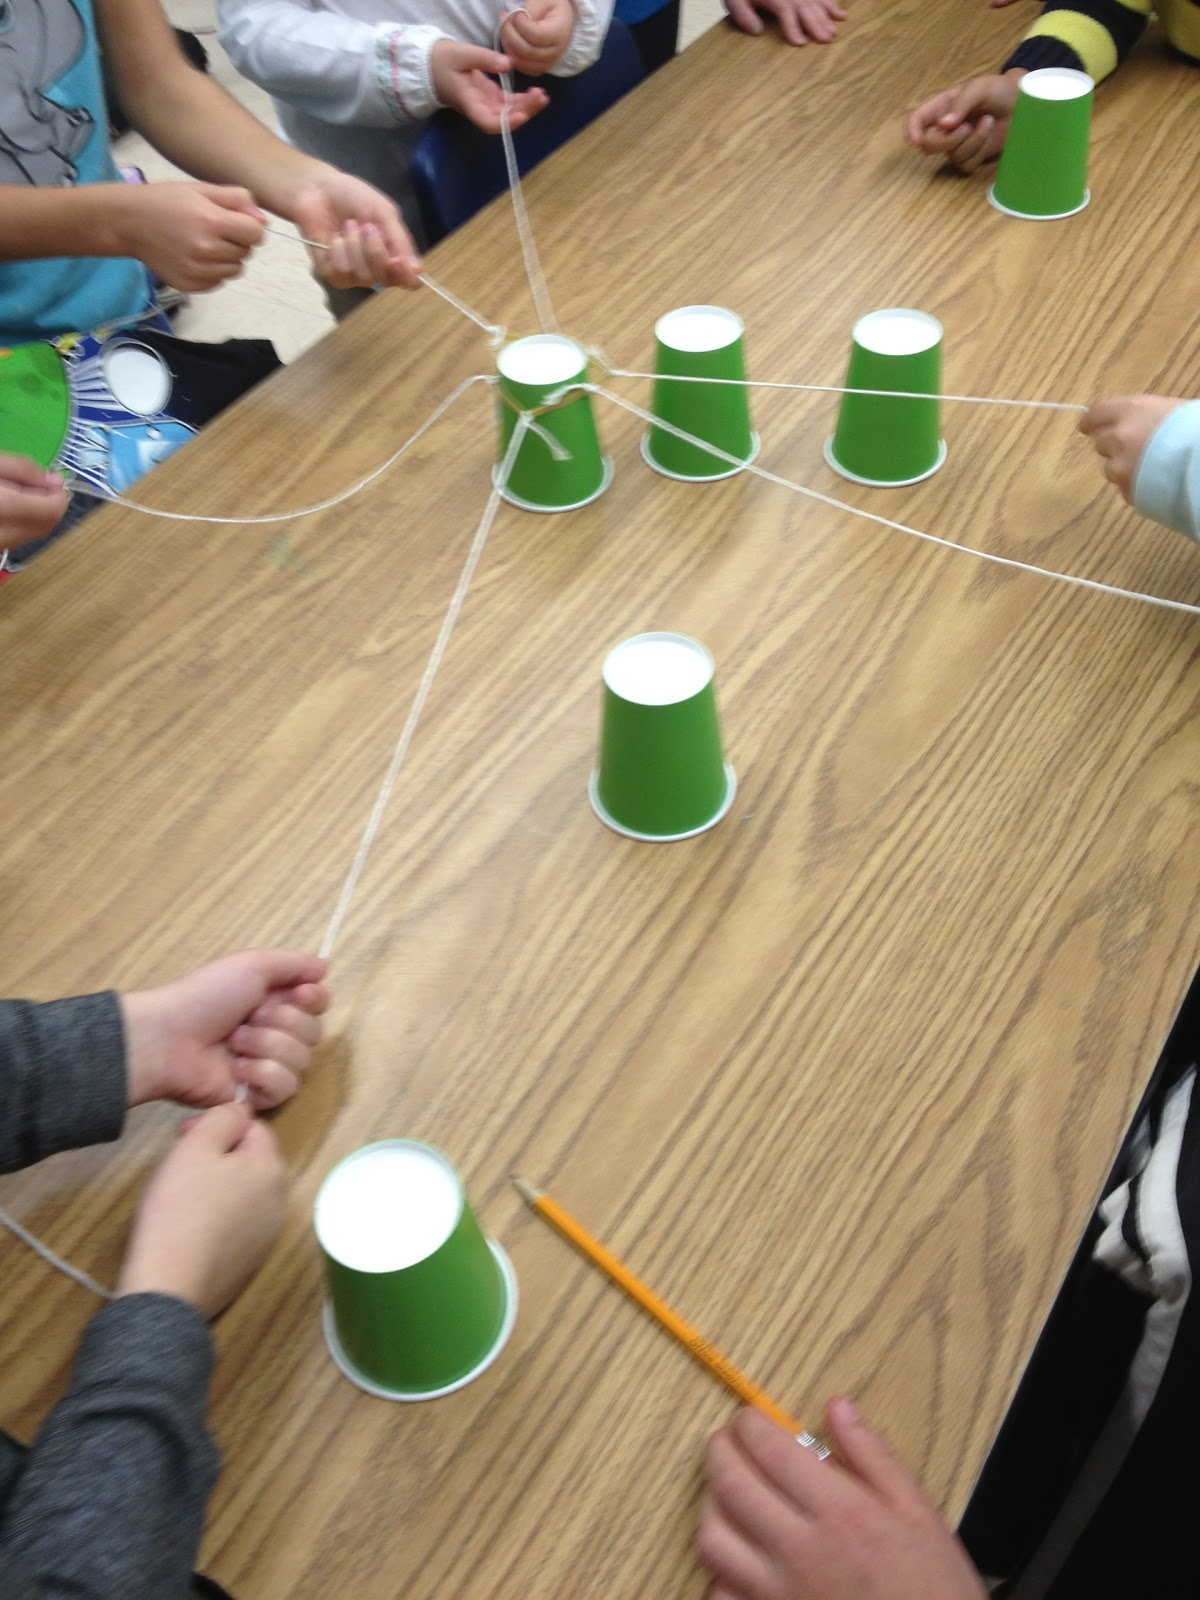 Team Building Cup Stacking Challenge